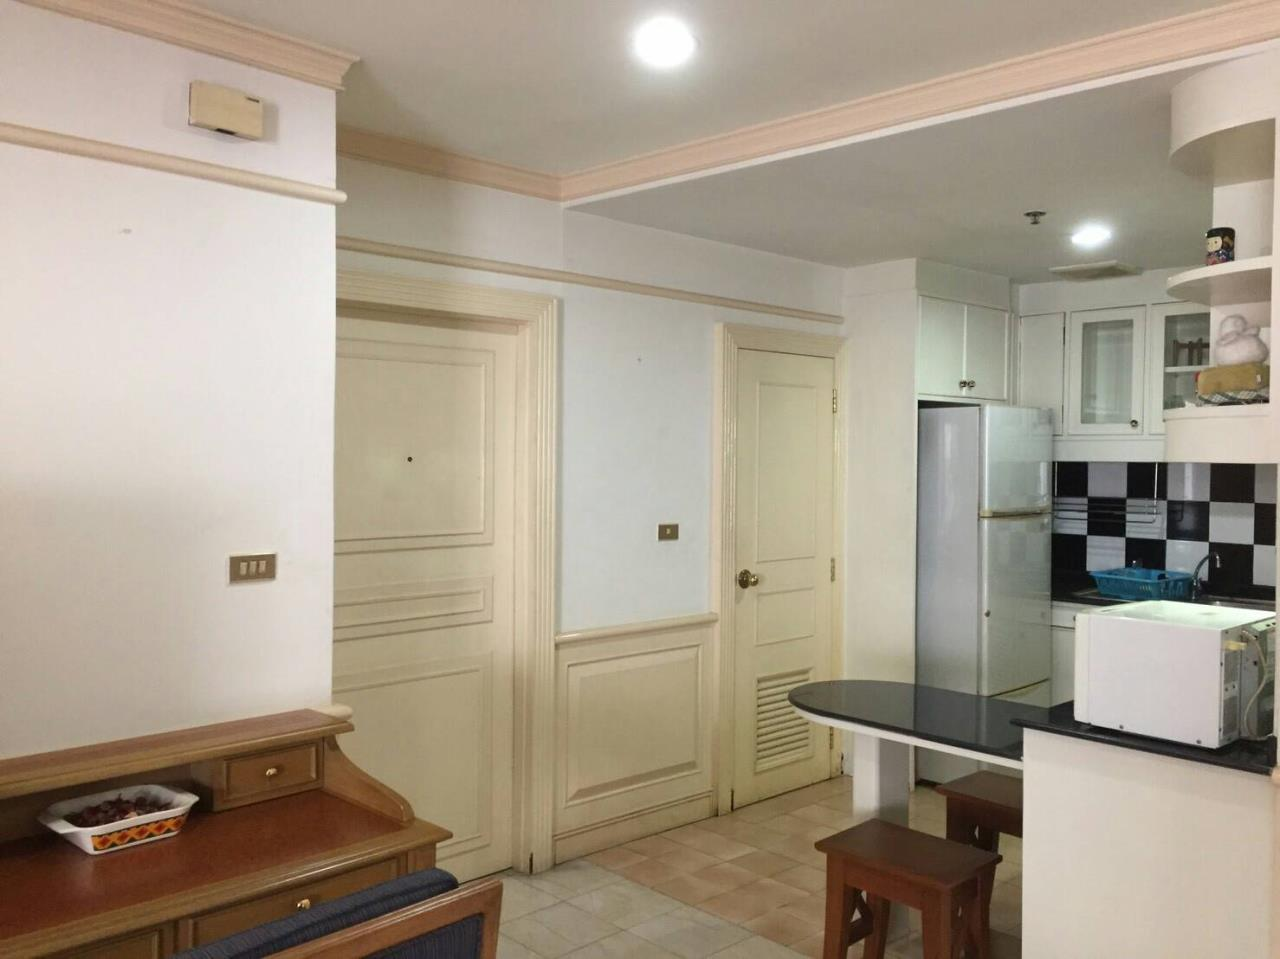 RE/MAX Properties Agency's SALE 2 Beds 141.7 Sq.M. in Moon tower, Thonglor area (Sukhumvit 59)  6